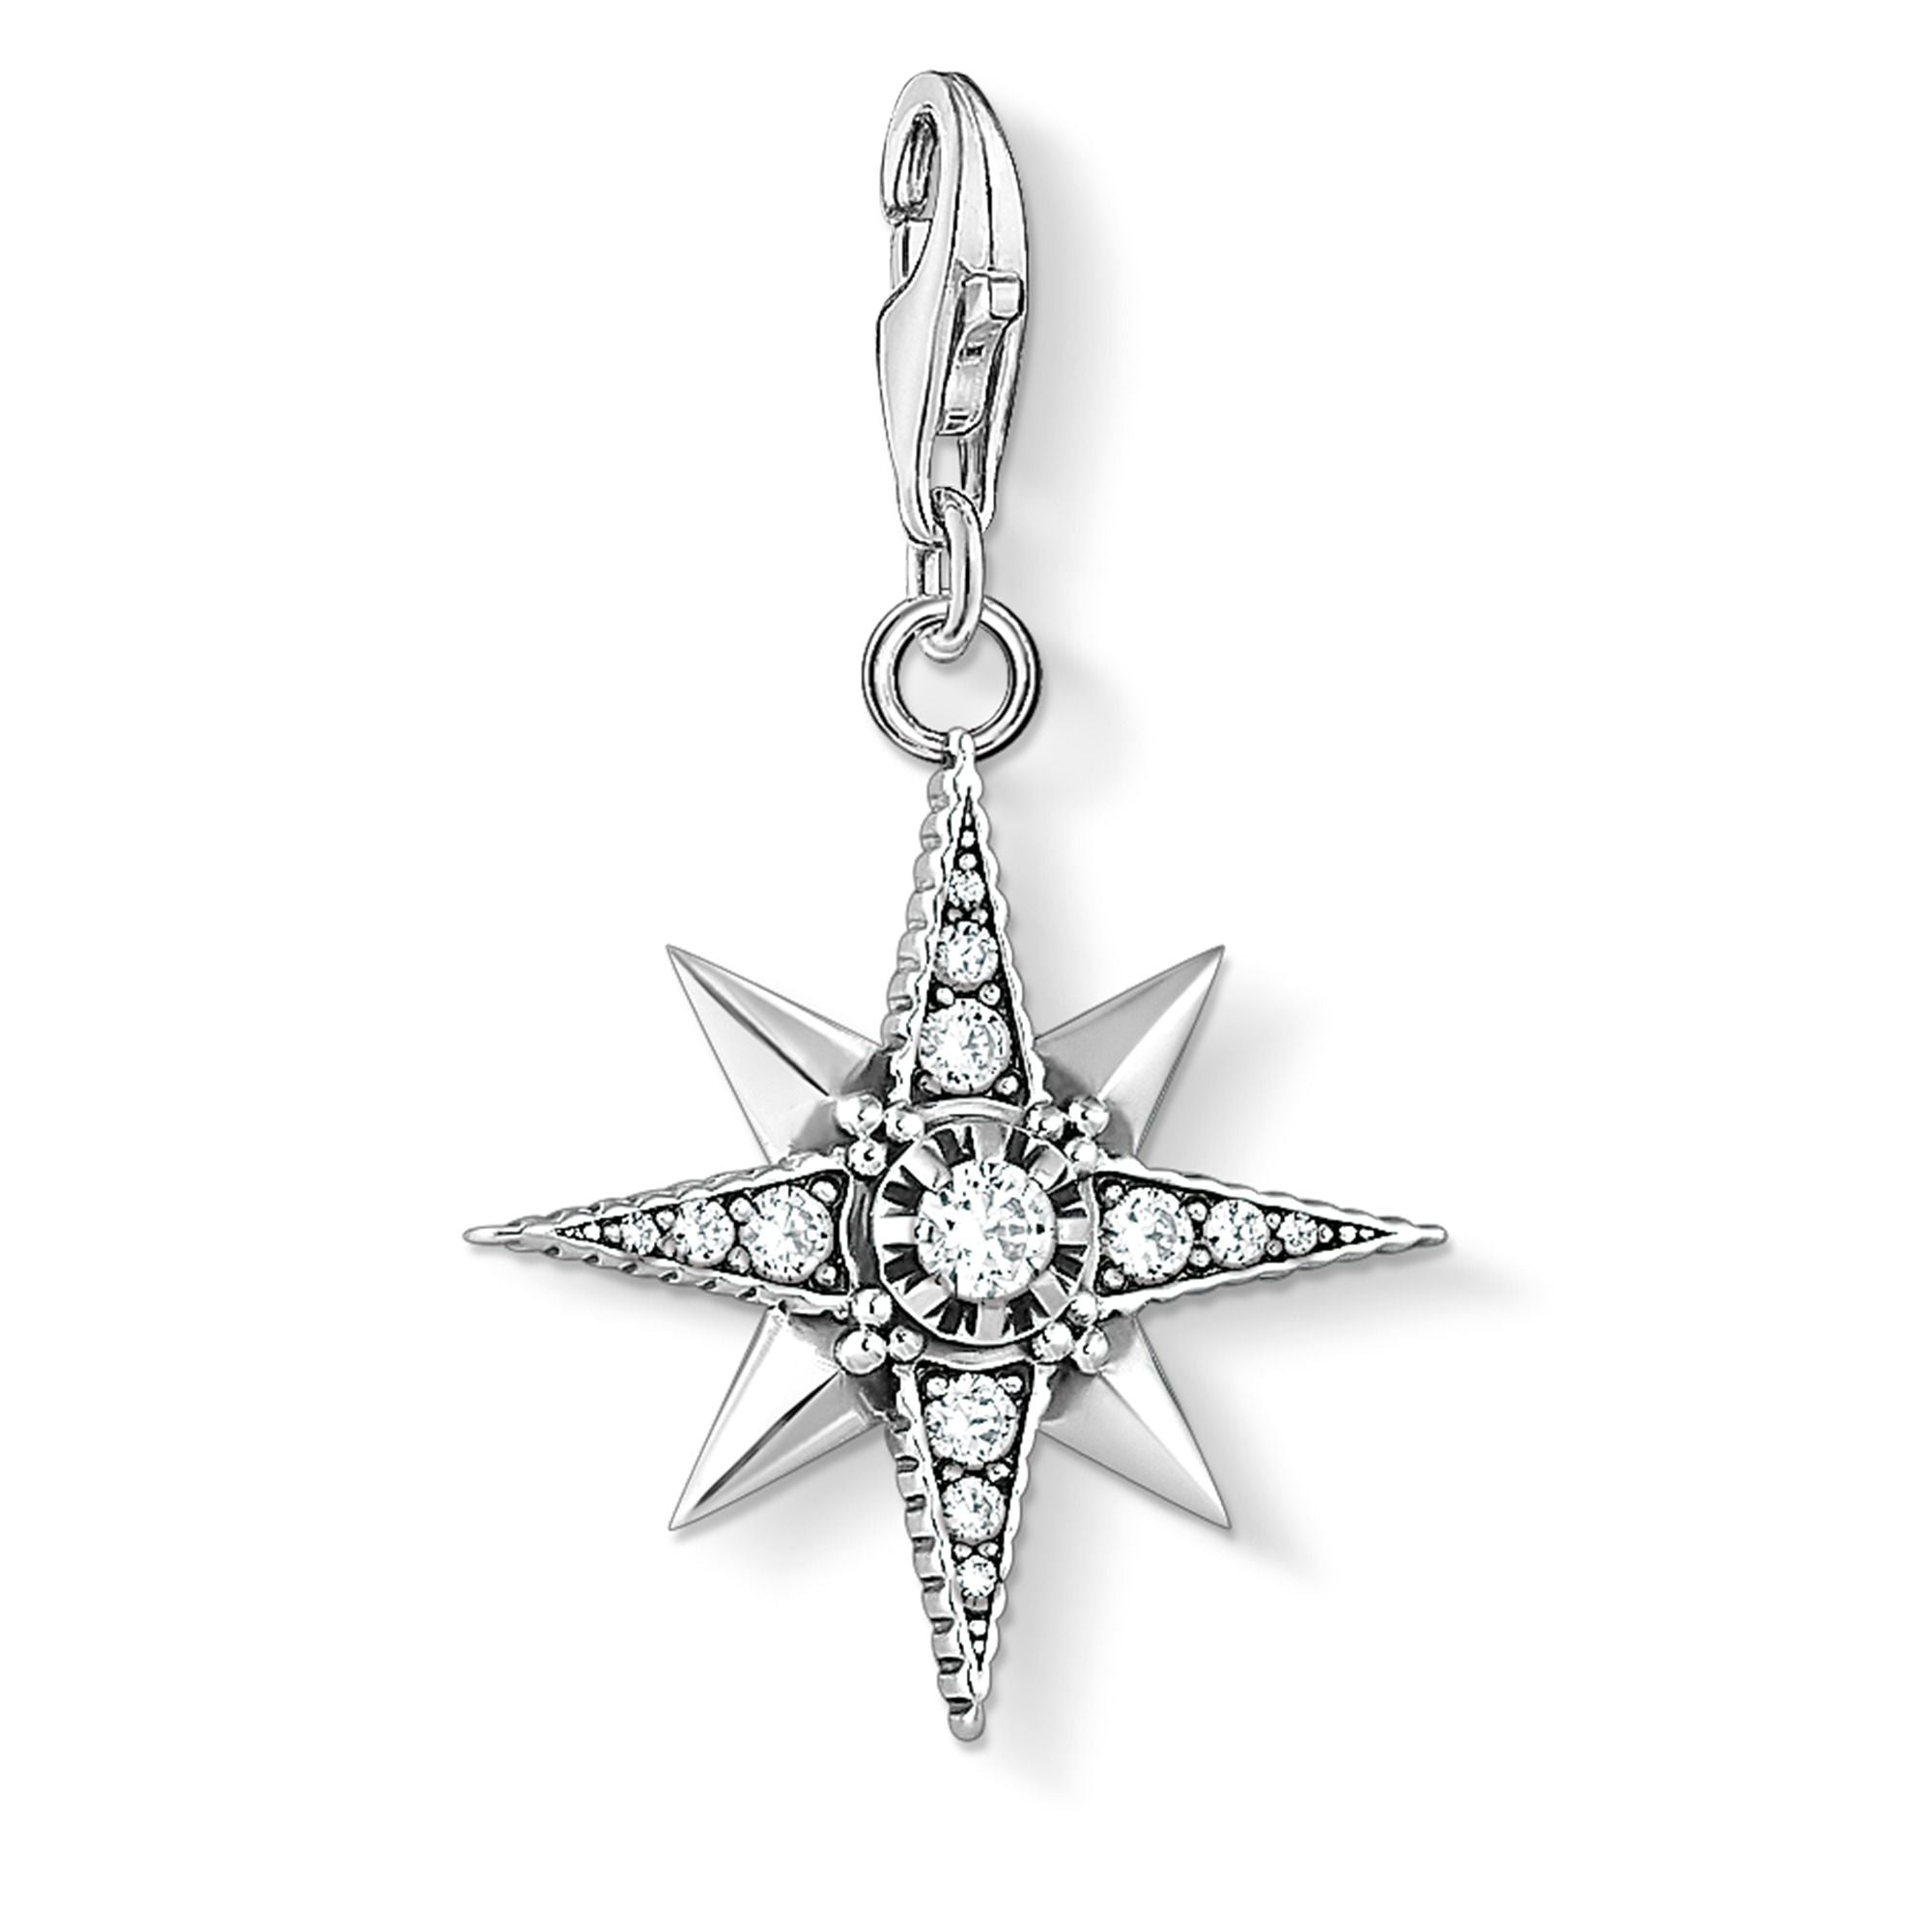 Thomas Sabo Charm Club Royalty Star 1756-643-14